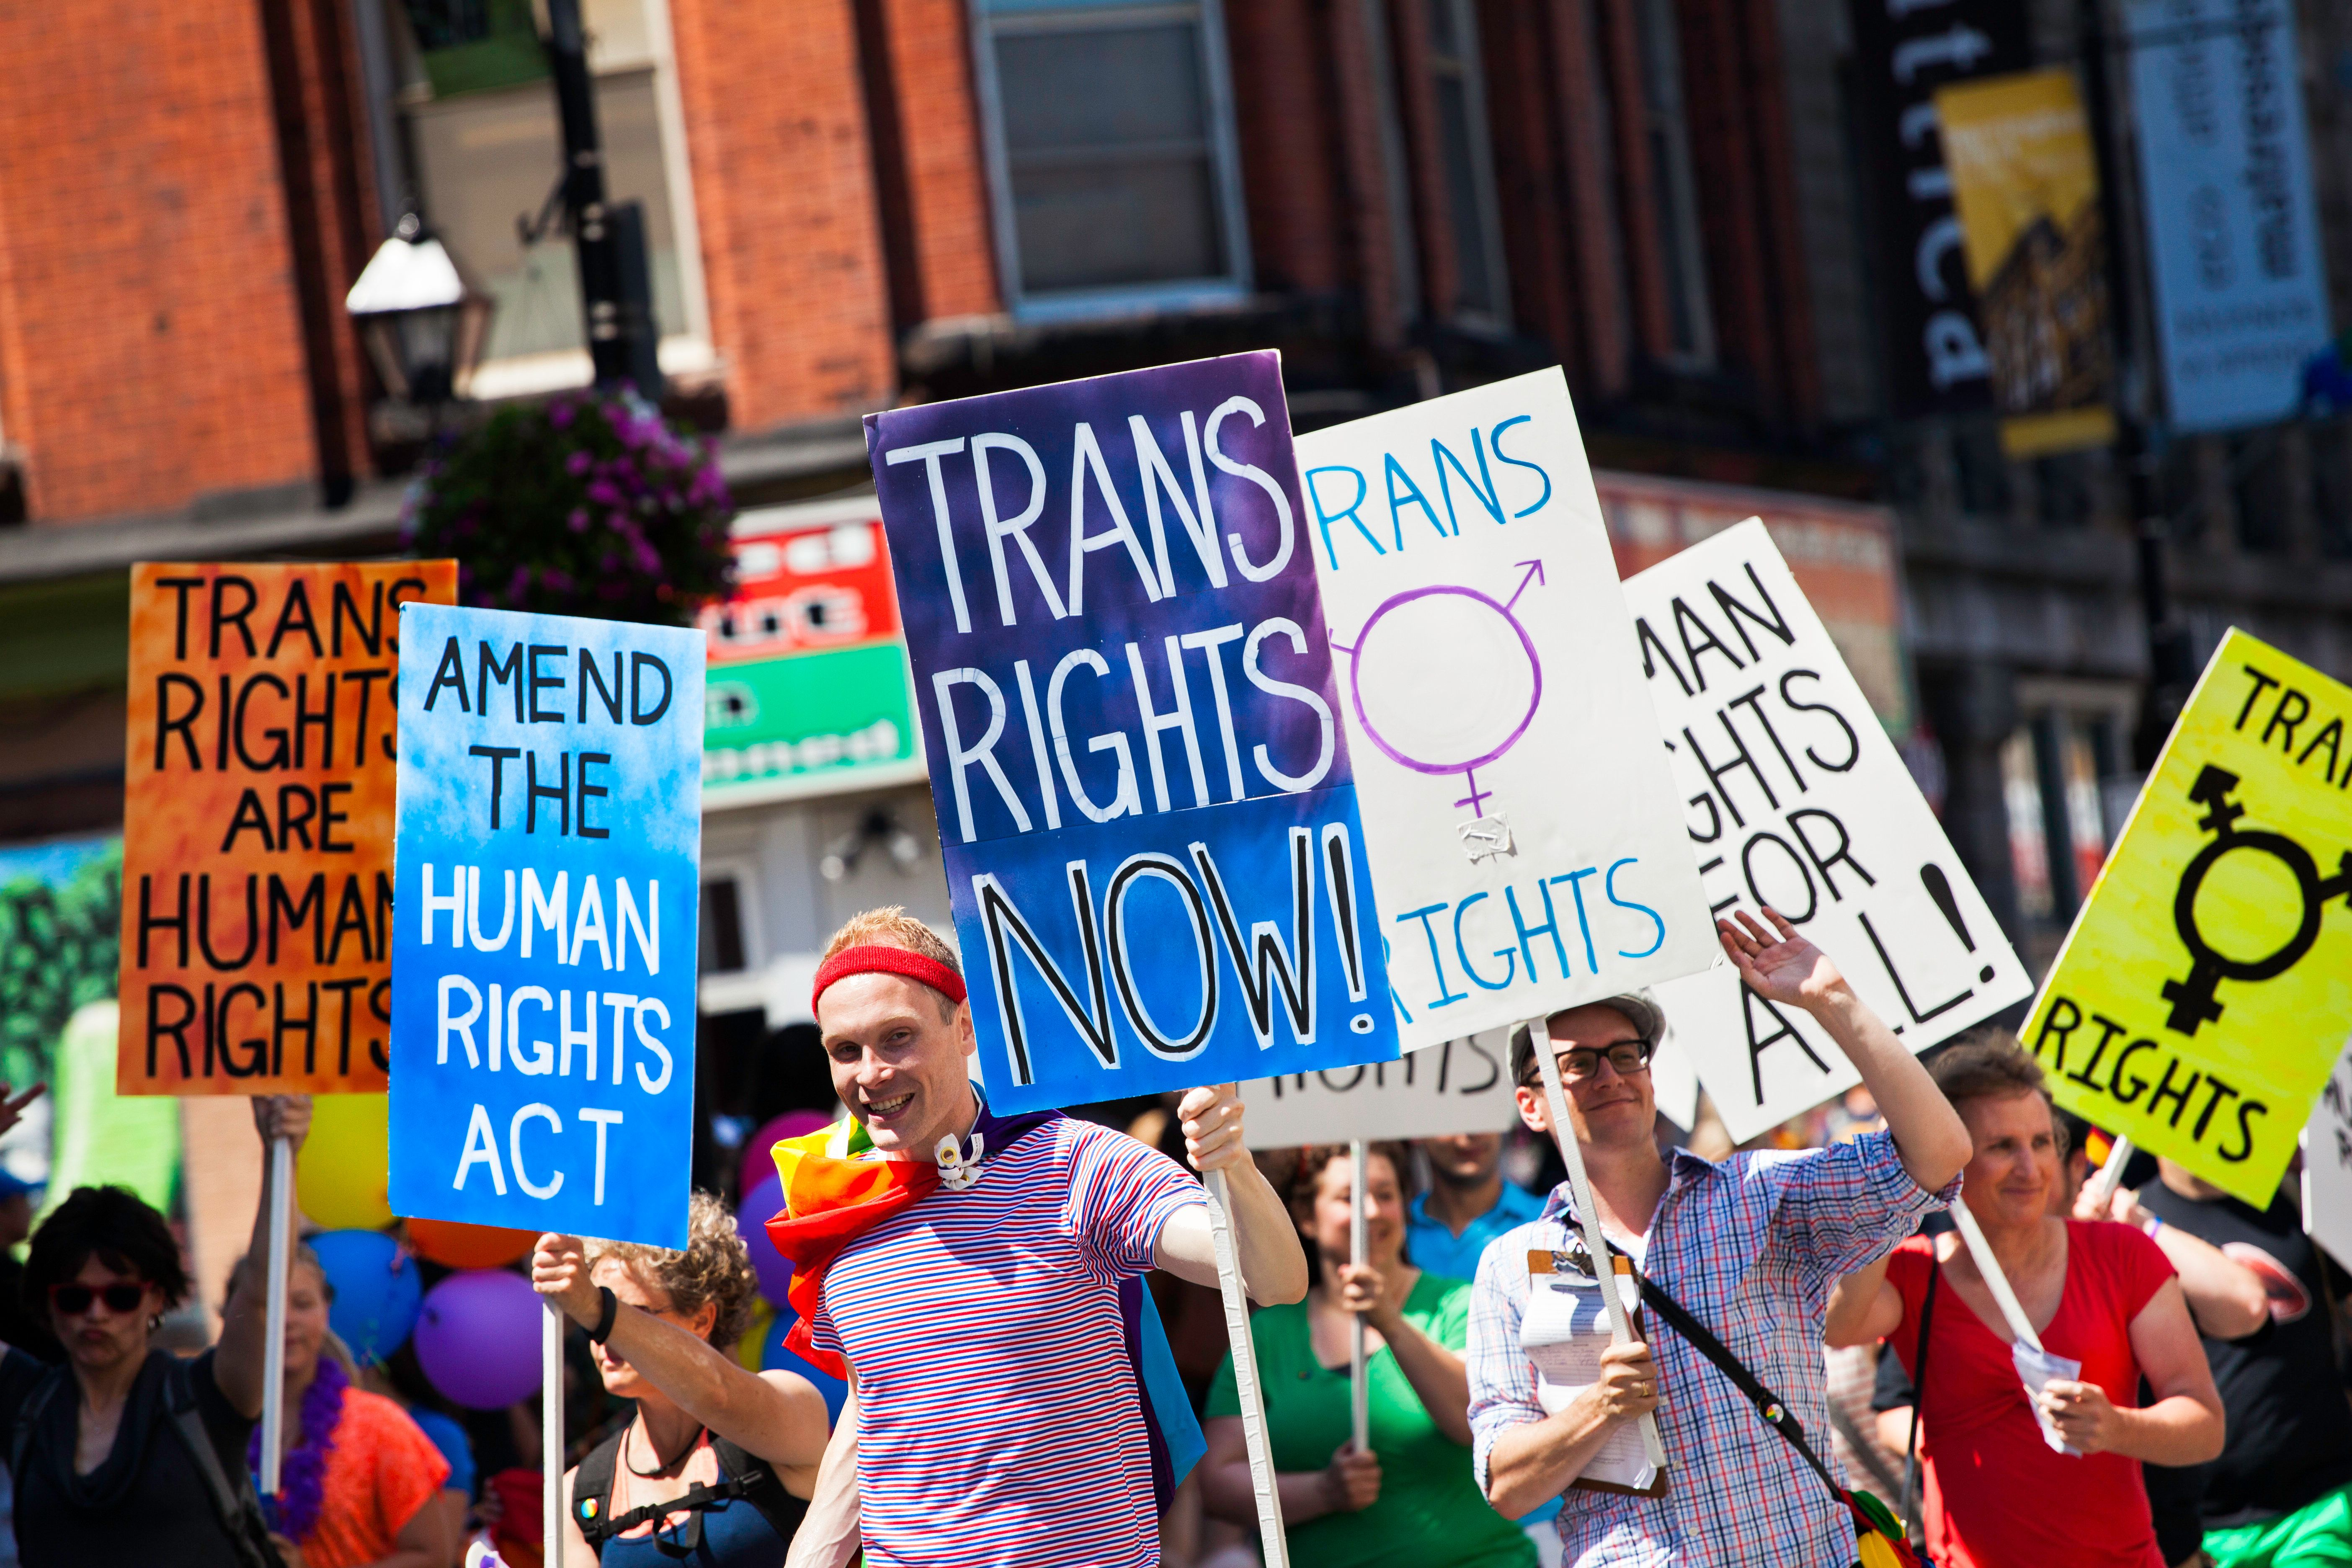 Transgender Americans are disproportionatelyaffected by financial challenges.